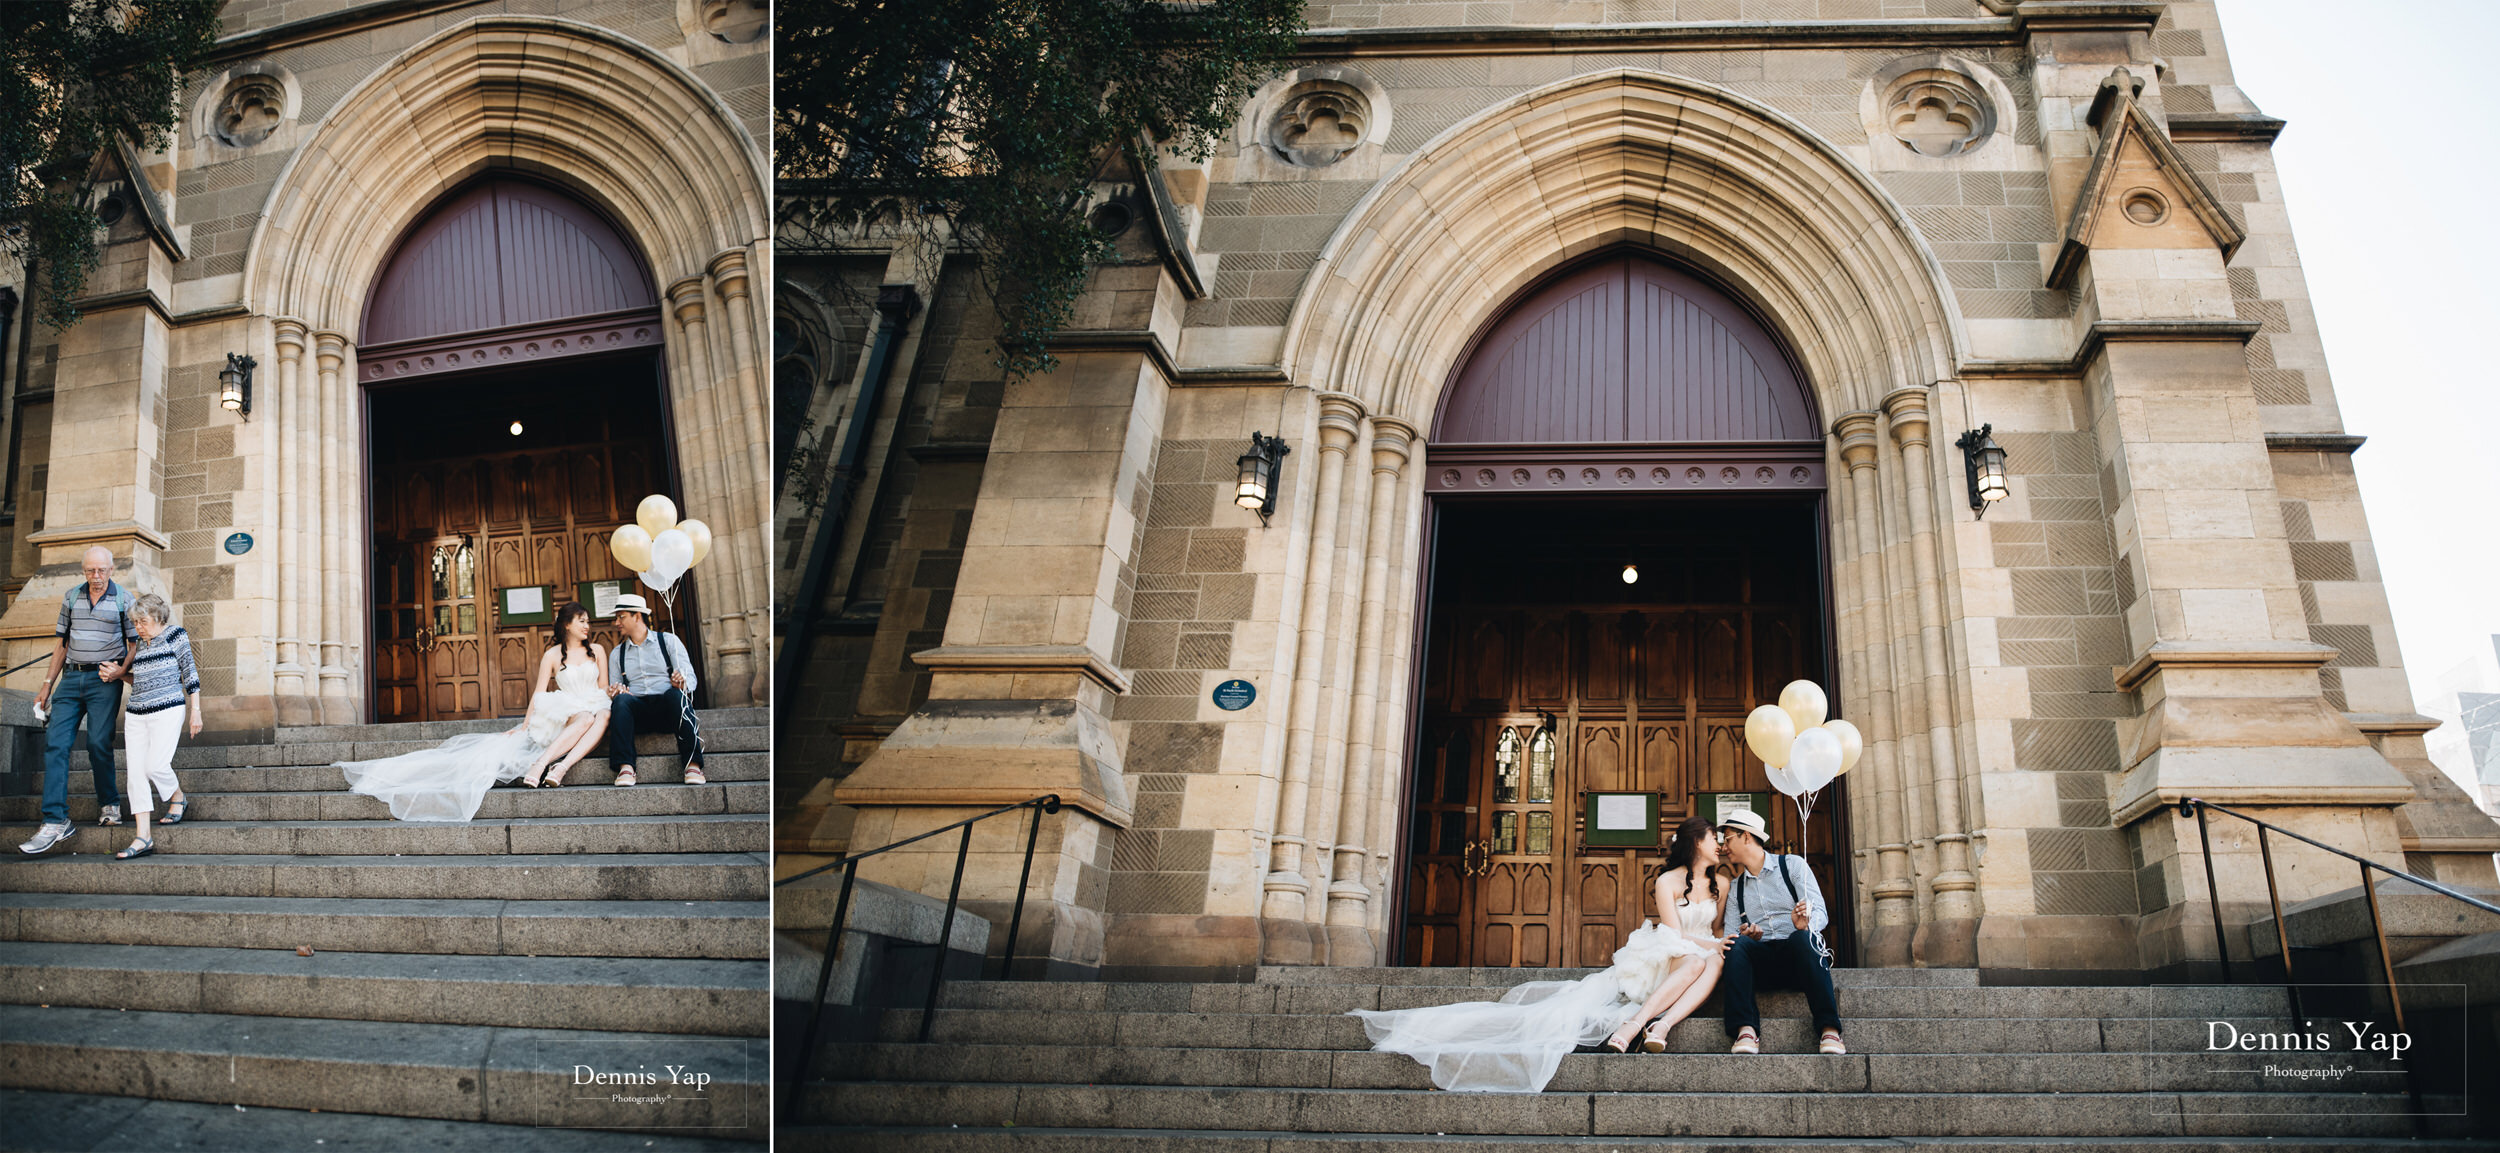 king bella pre wedding melbourne dennis yap photography malaysia top international photographer-2.jpg